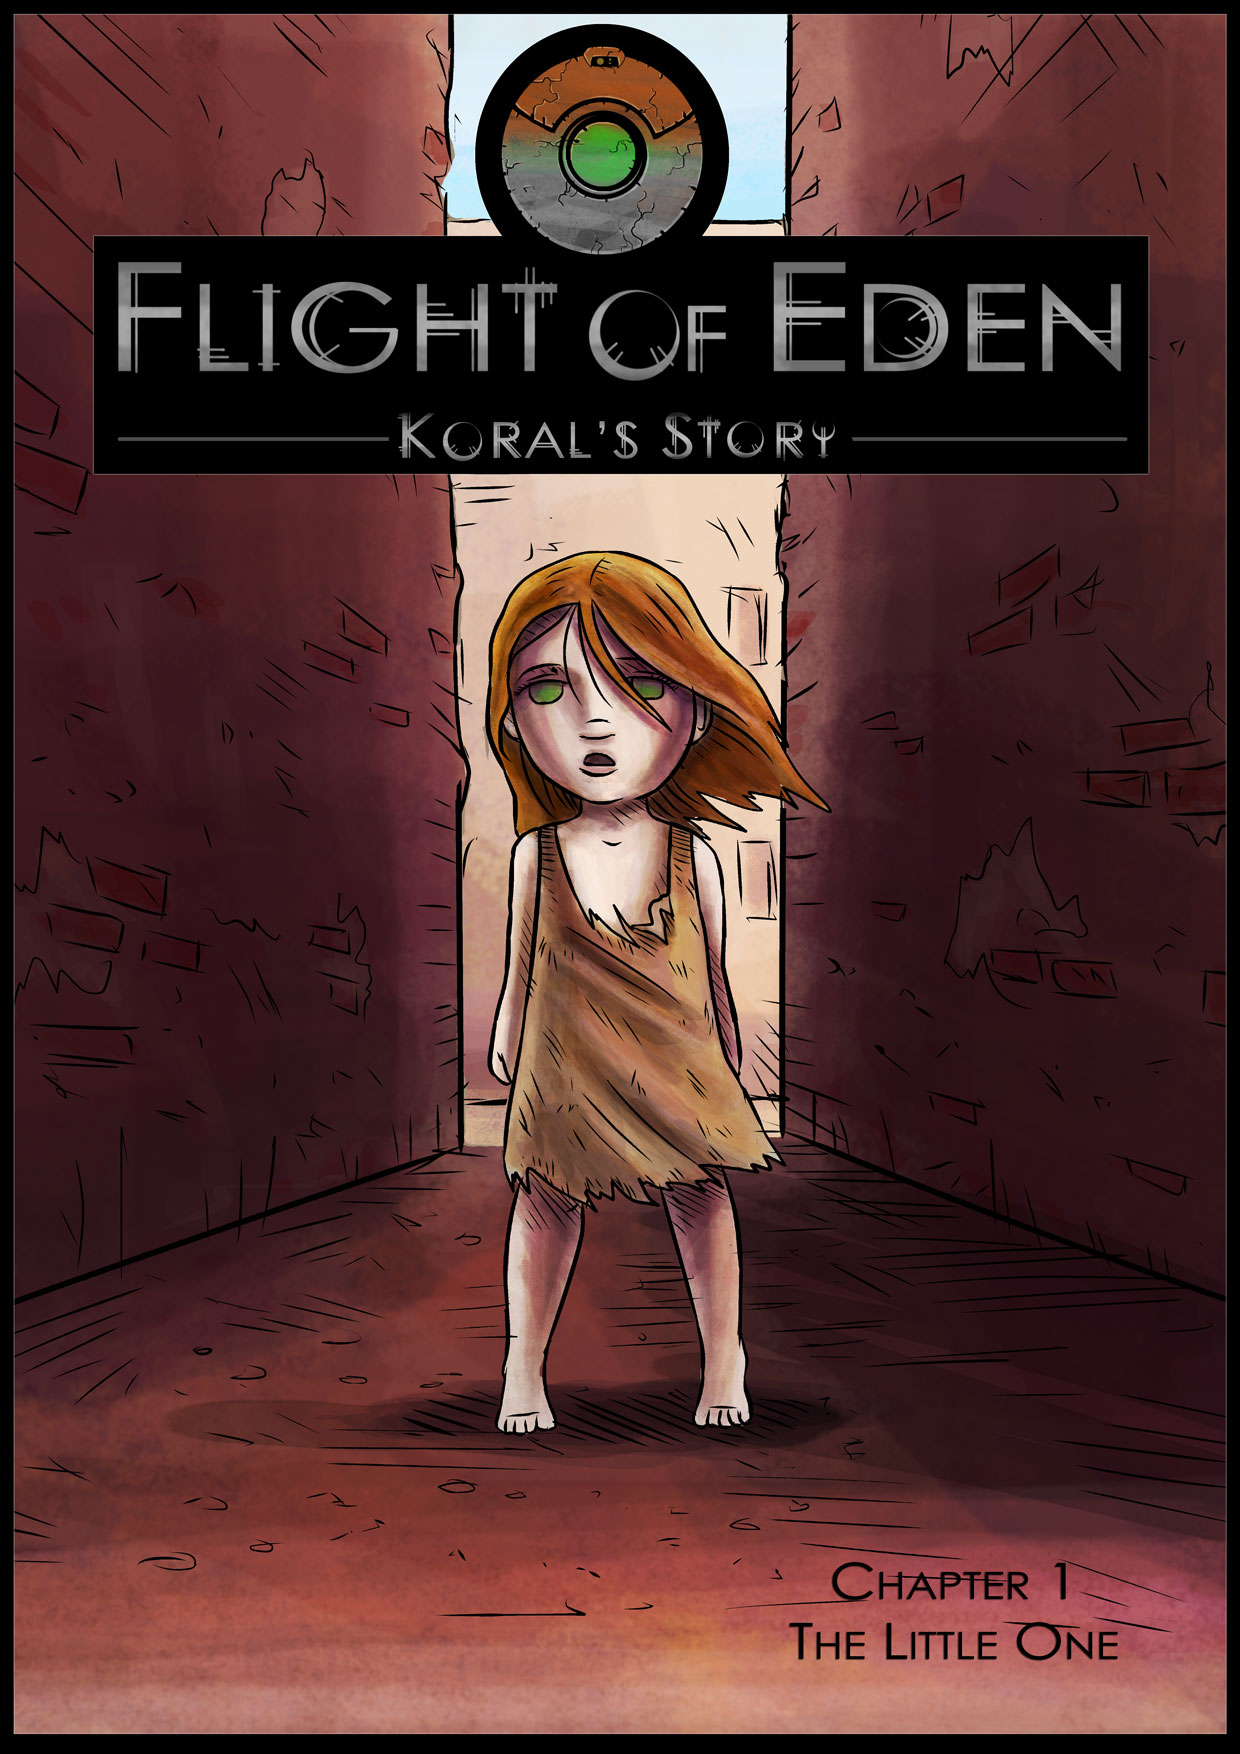 Flight of Eden - Cover Art